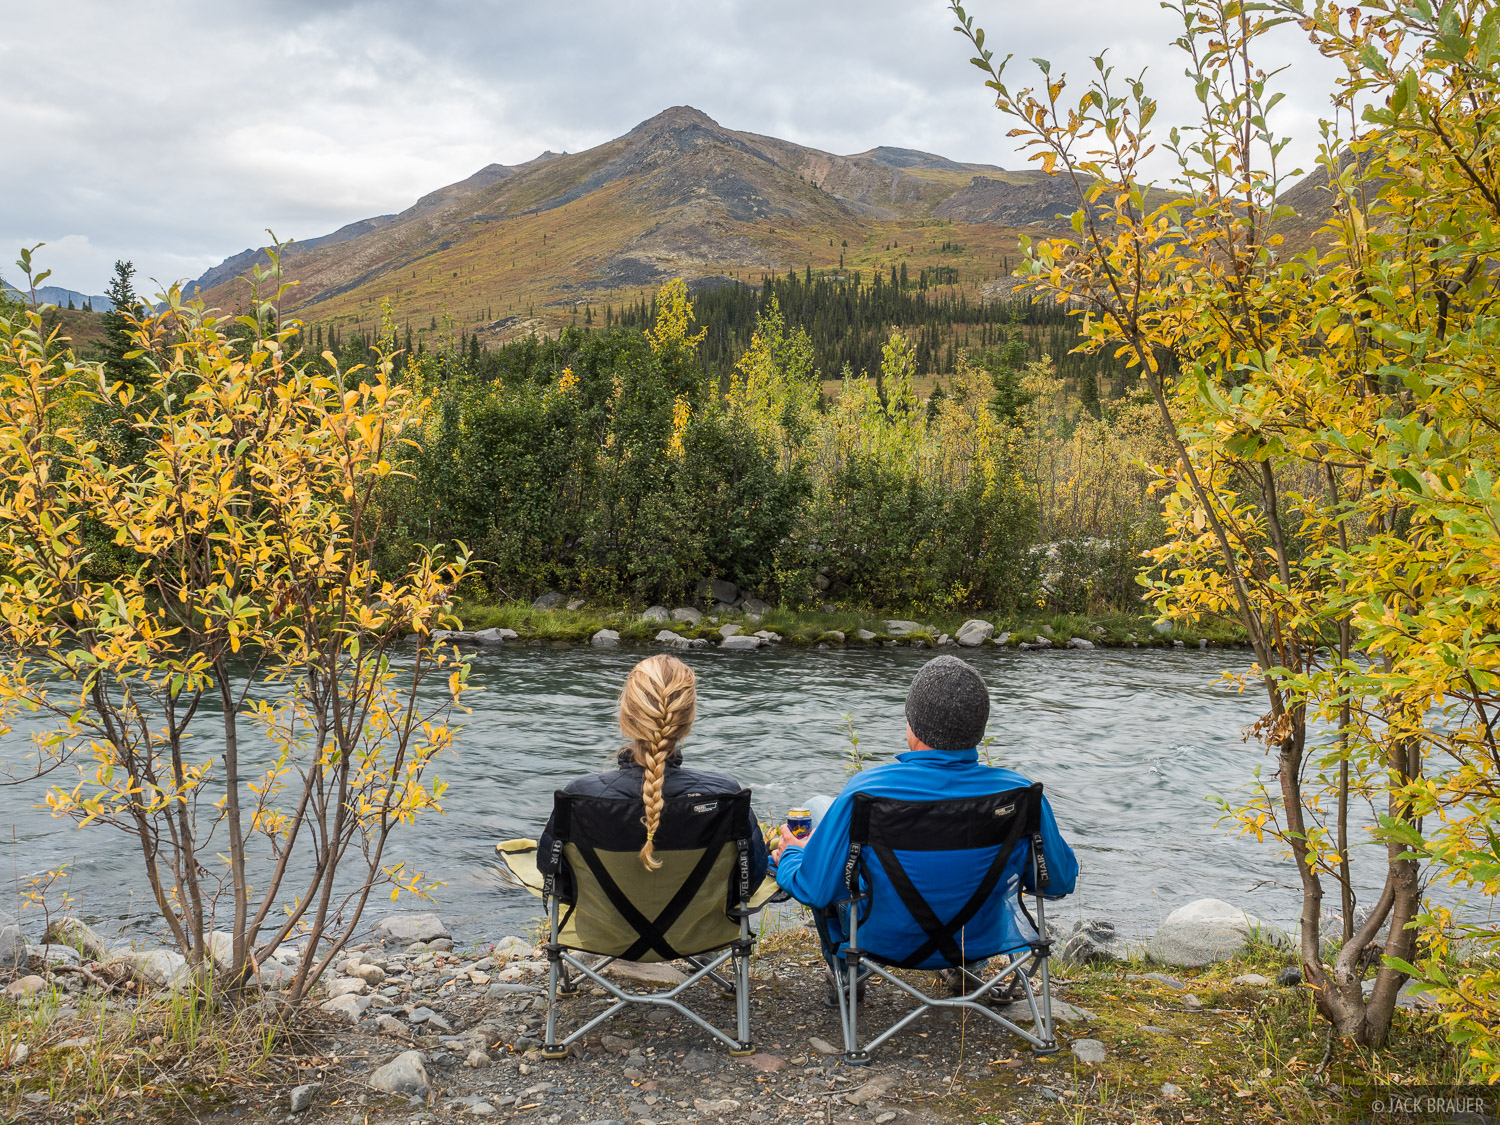 Before backpacking in Tombsone Range, we needed to wait out rainy weather, so we camped along the North Klondike River for about...